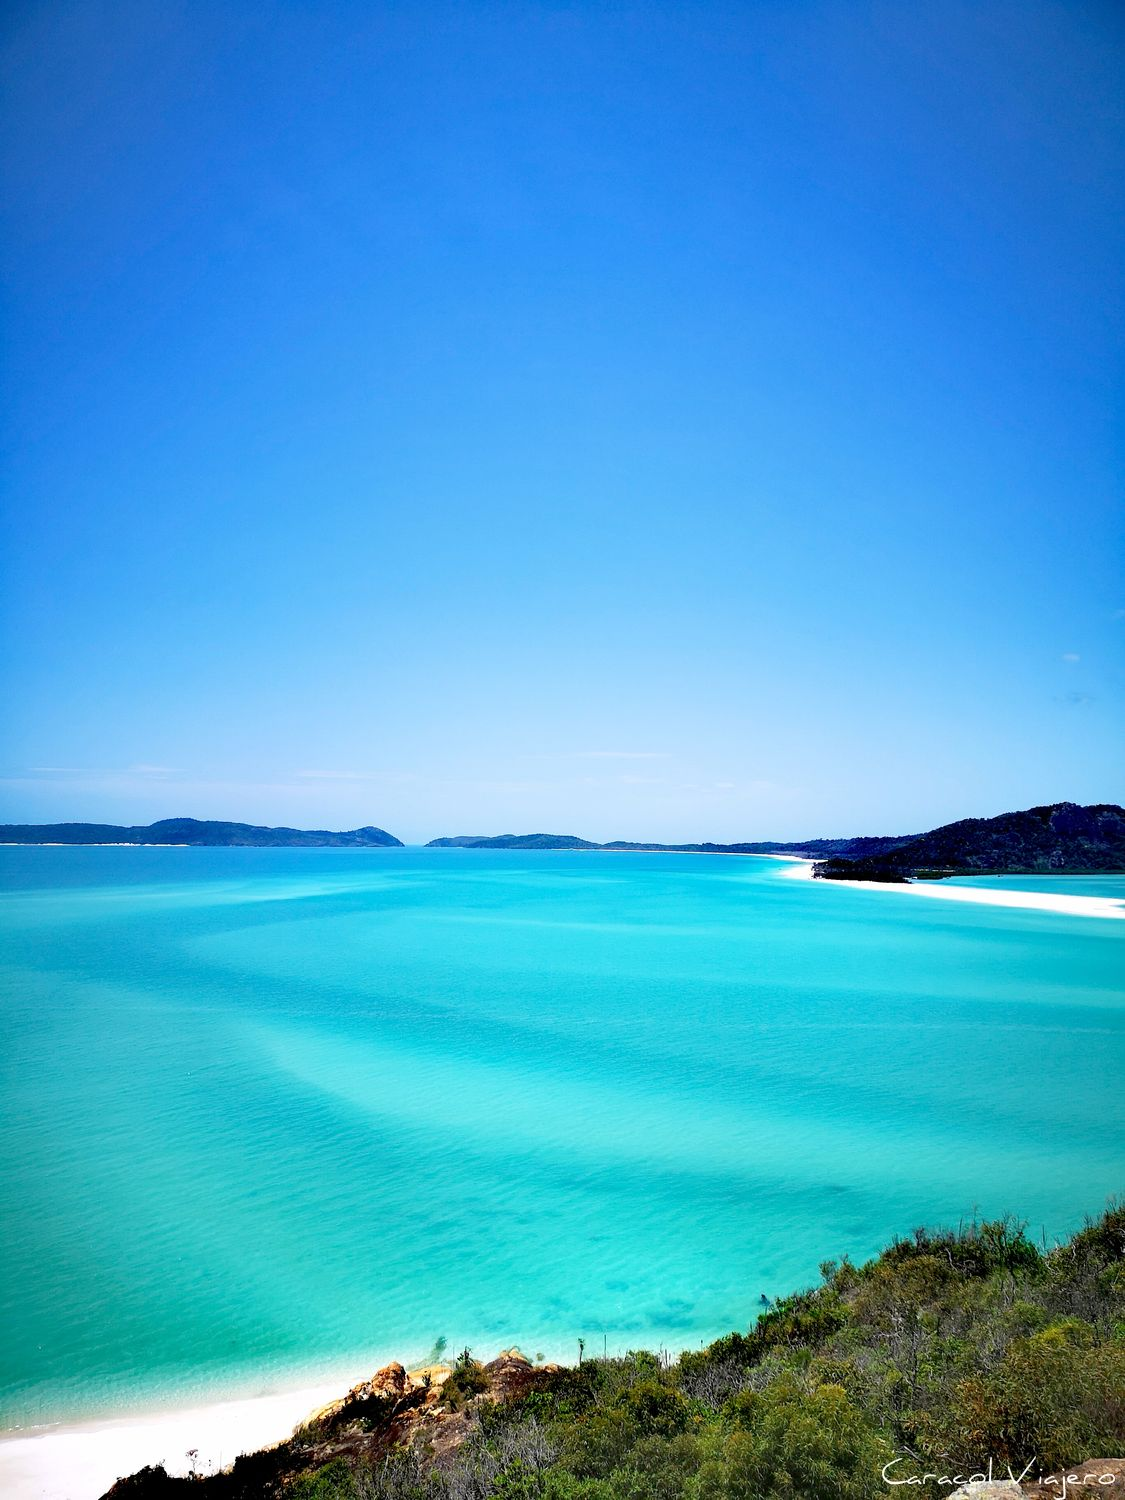 Arena azul whitsundays